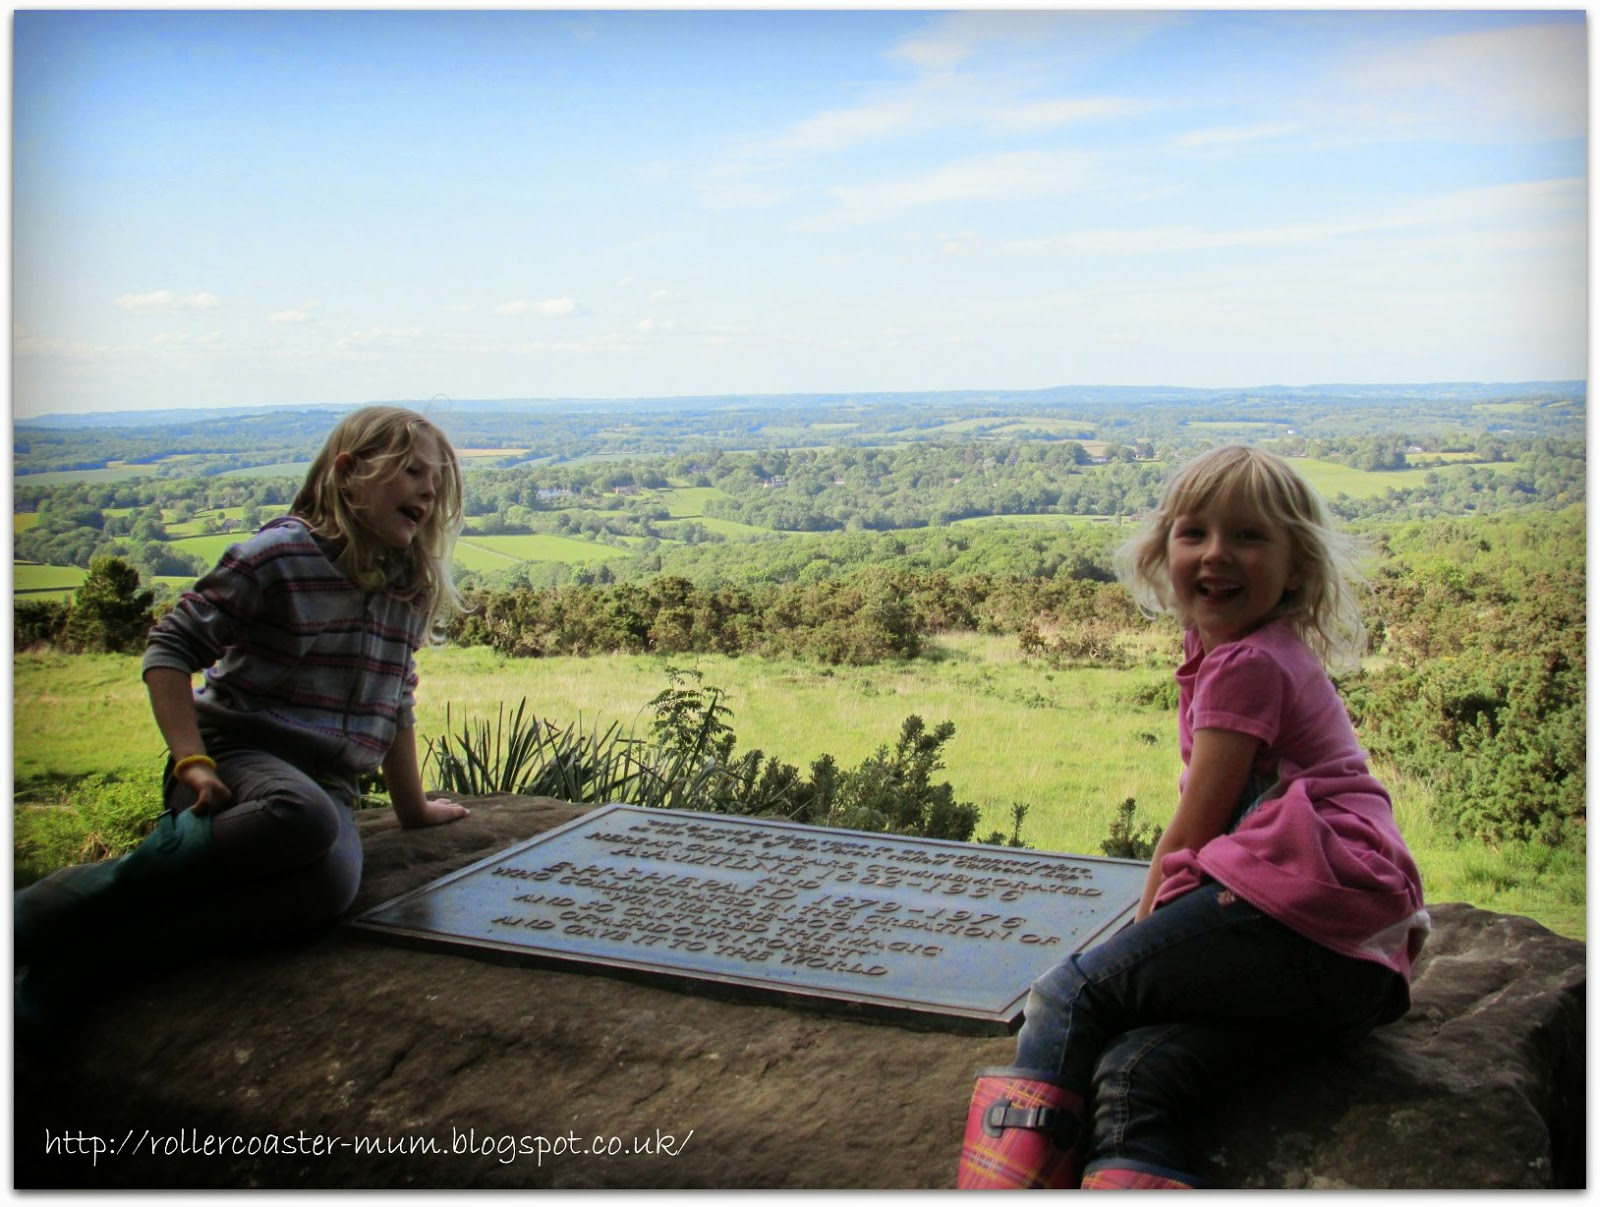 Winnie the Pooh's Enchanted Place, Ashdown Forest